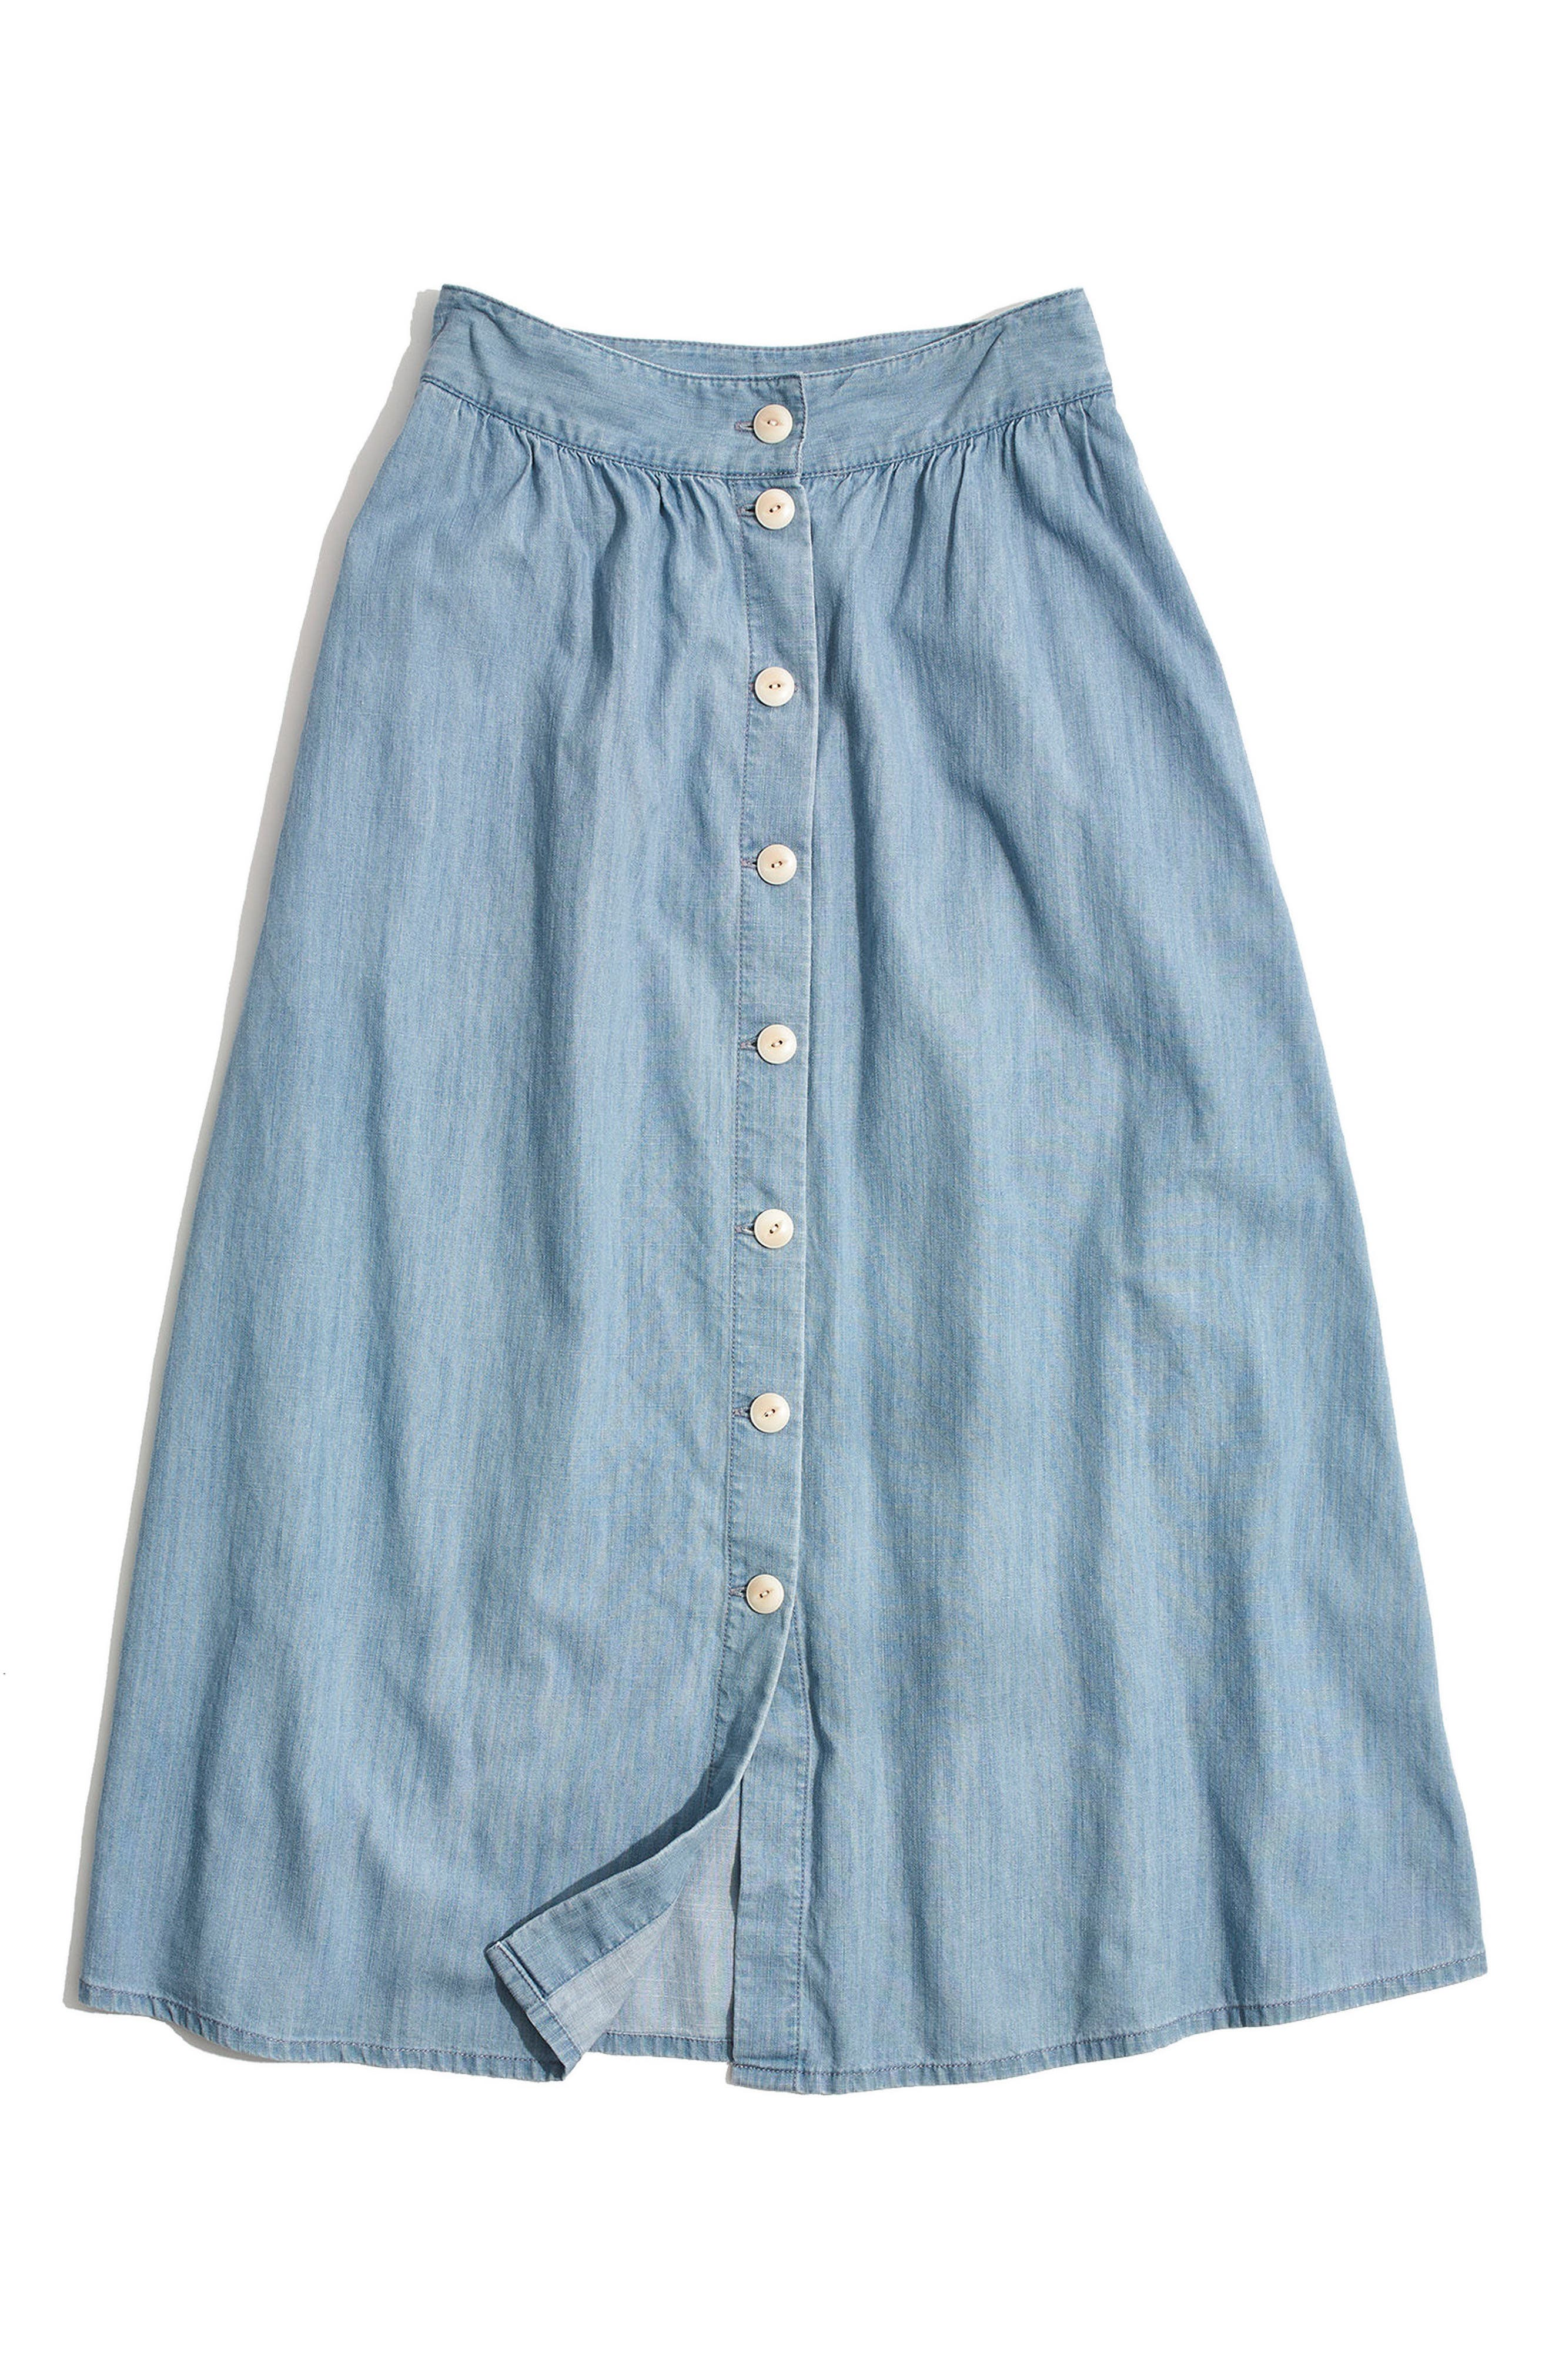 Button Front Midi Skirt,                             Alternate thumbnail 4, color,                             Altamira Wash